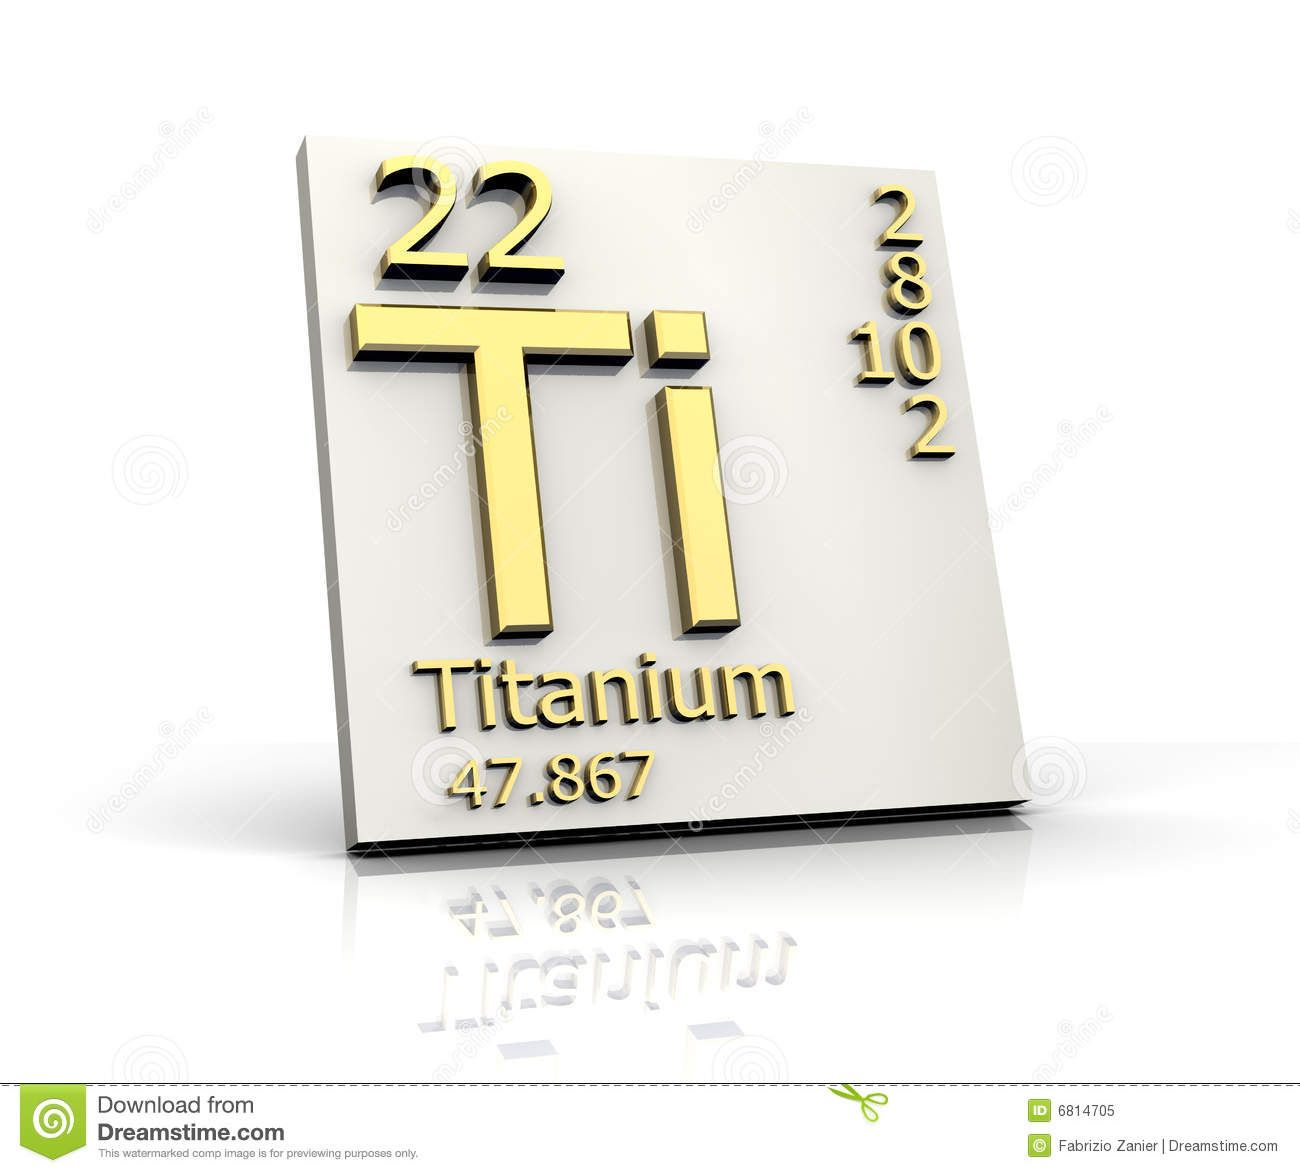 Titanium 22 pinterest periodic table titaniums atomic number is 22 and its atomic mass is amu each titanium atom has 22 protons 22 electrons 2 valence electrons and 25 neutrons urtaz Choice Image